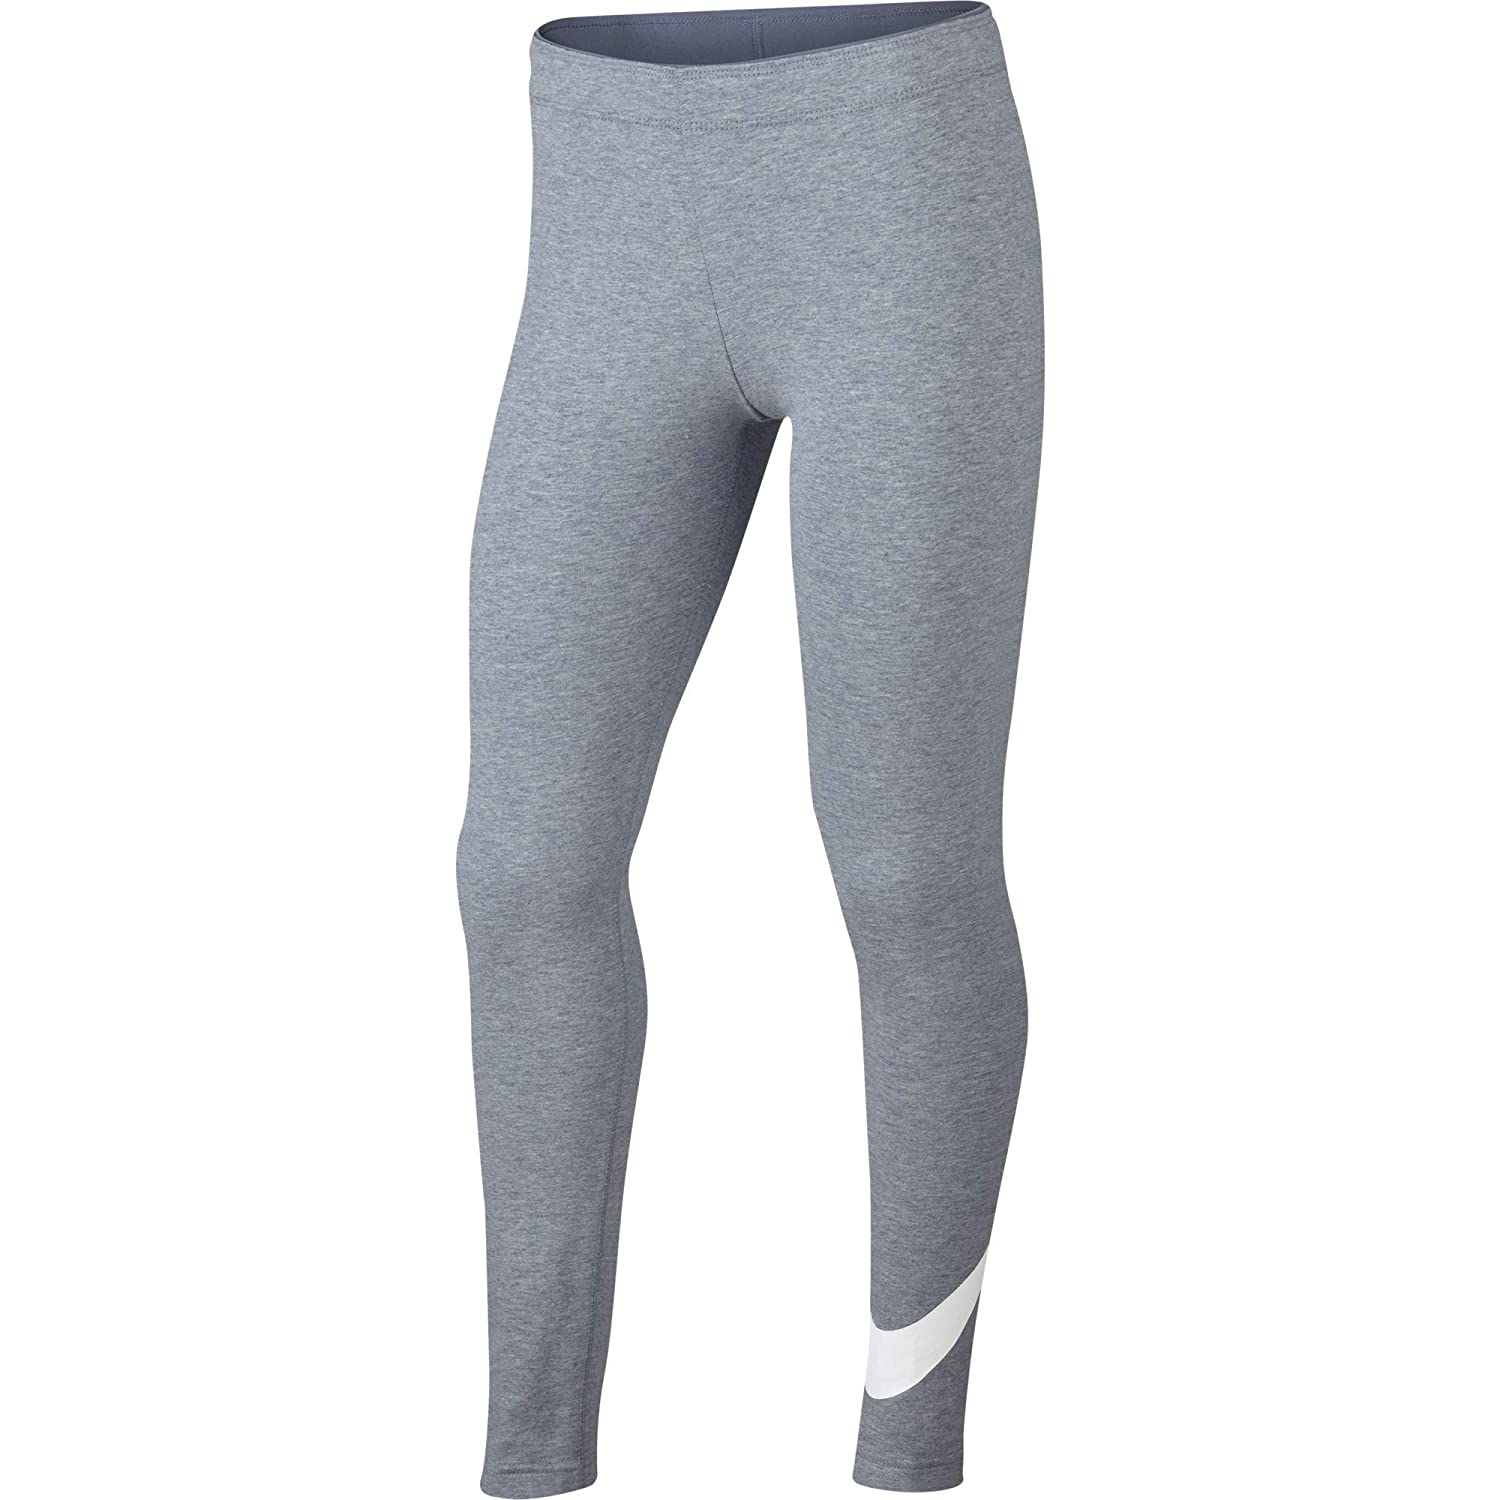 Nike G NSW Favorites Swsh Tight, Pantaloni Running Bambina